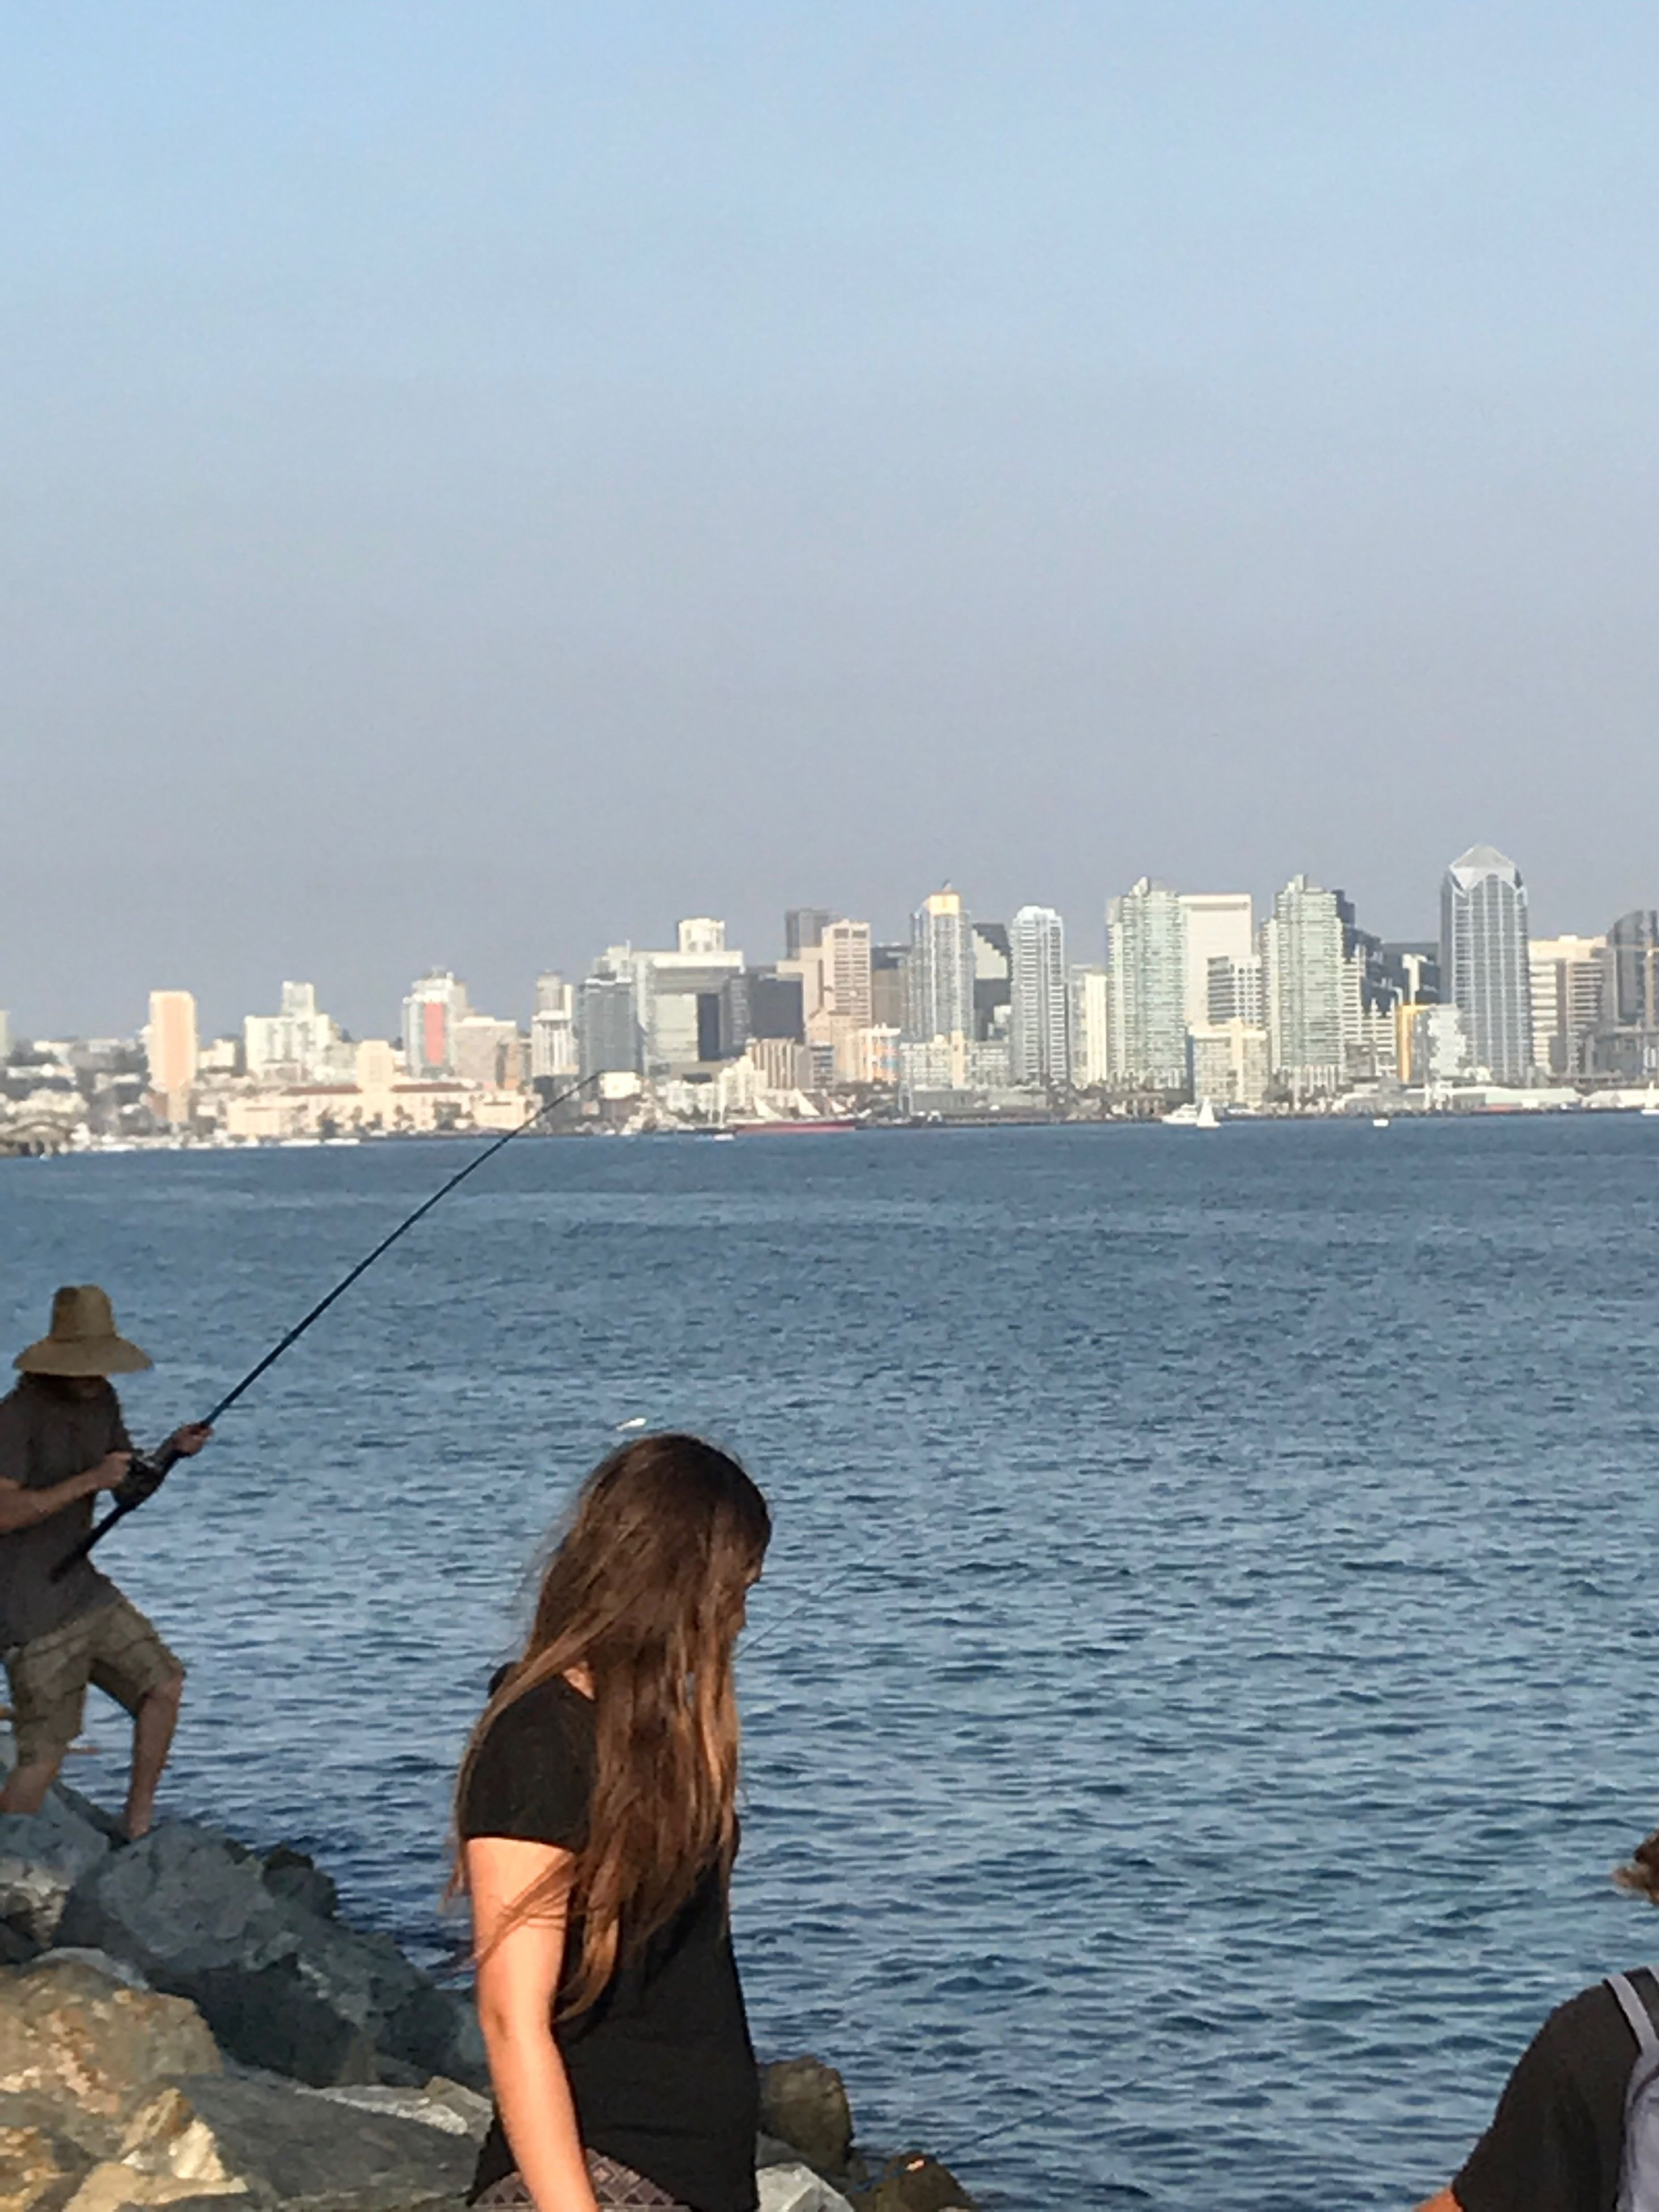 sea, real people, skyscraper, water, architecture, rear view, leisure activity, one person, built structure, building exterior, standing, city, day, lifestyles, clear sky, nature, outdoors, cityscape, scenics, horizon over water, urban skyline, sky, women, full length, beauty in nature, young adult, people